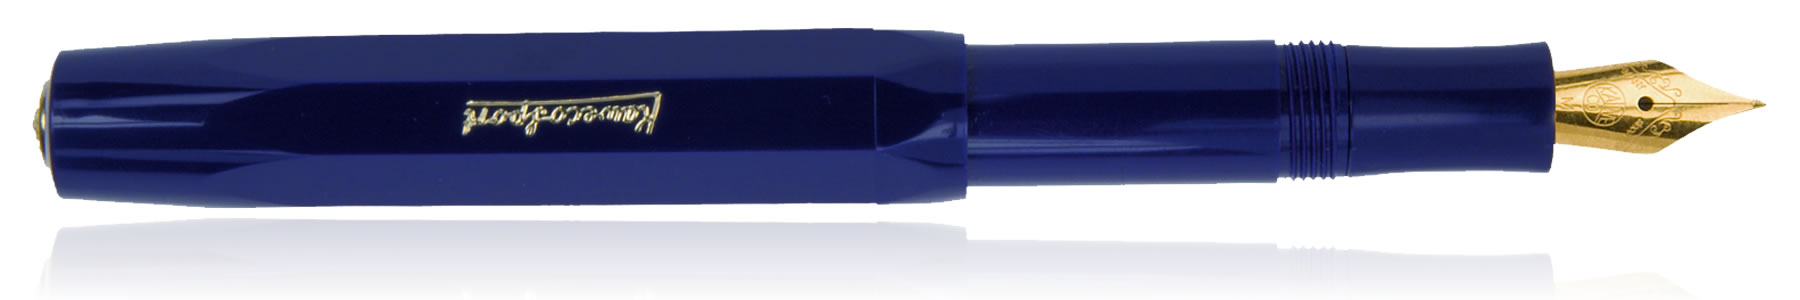 Kaweco Classic Sport Fountain Pen